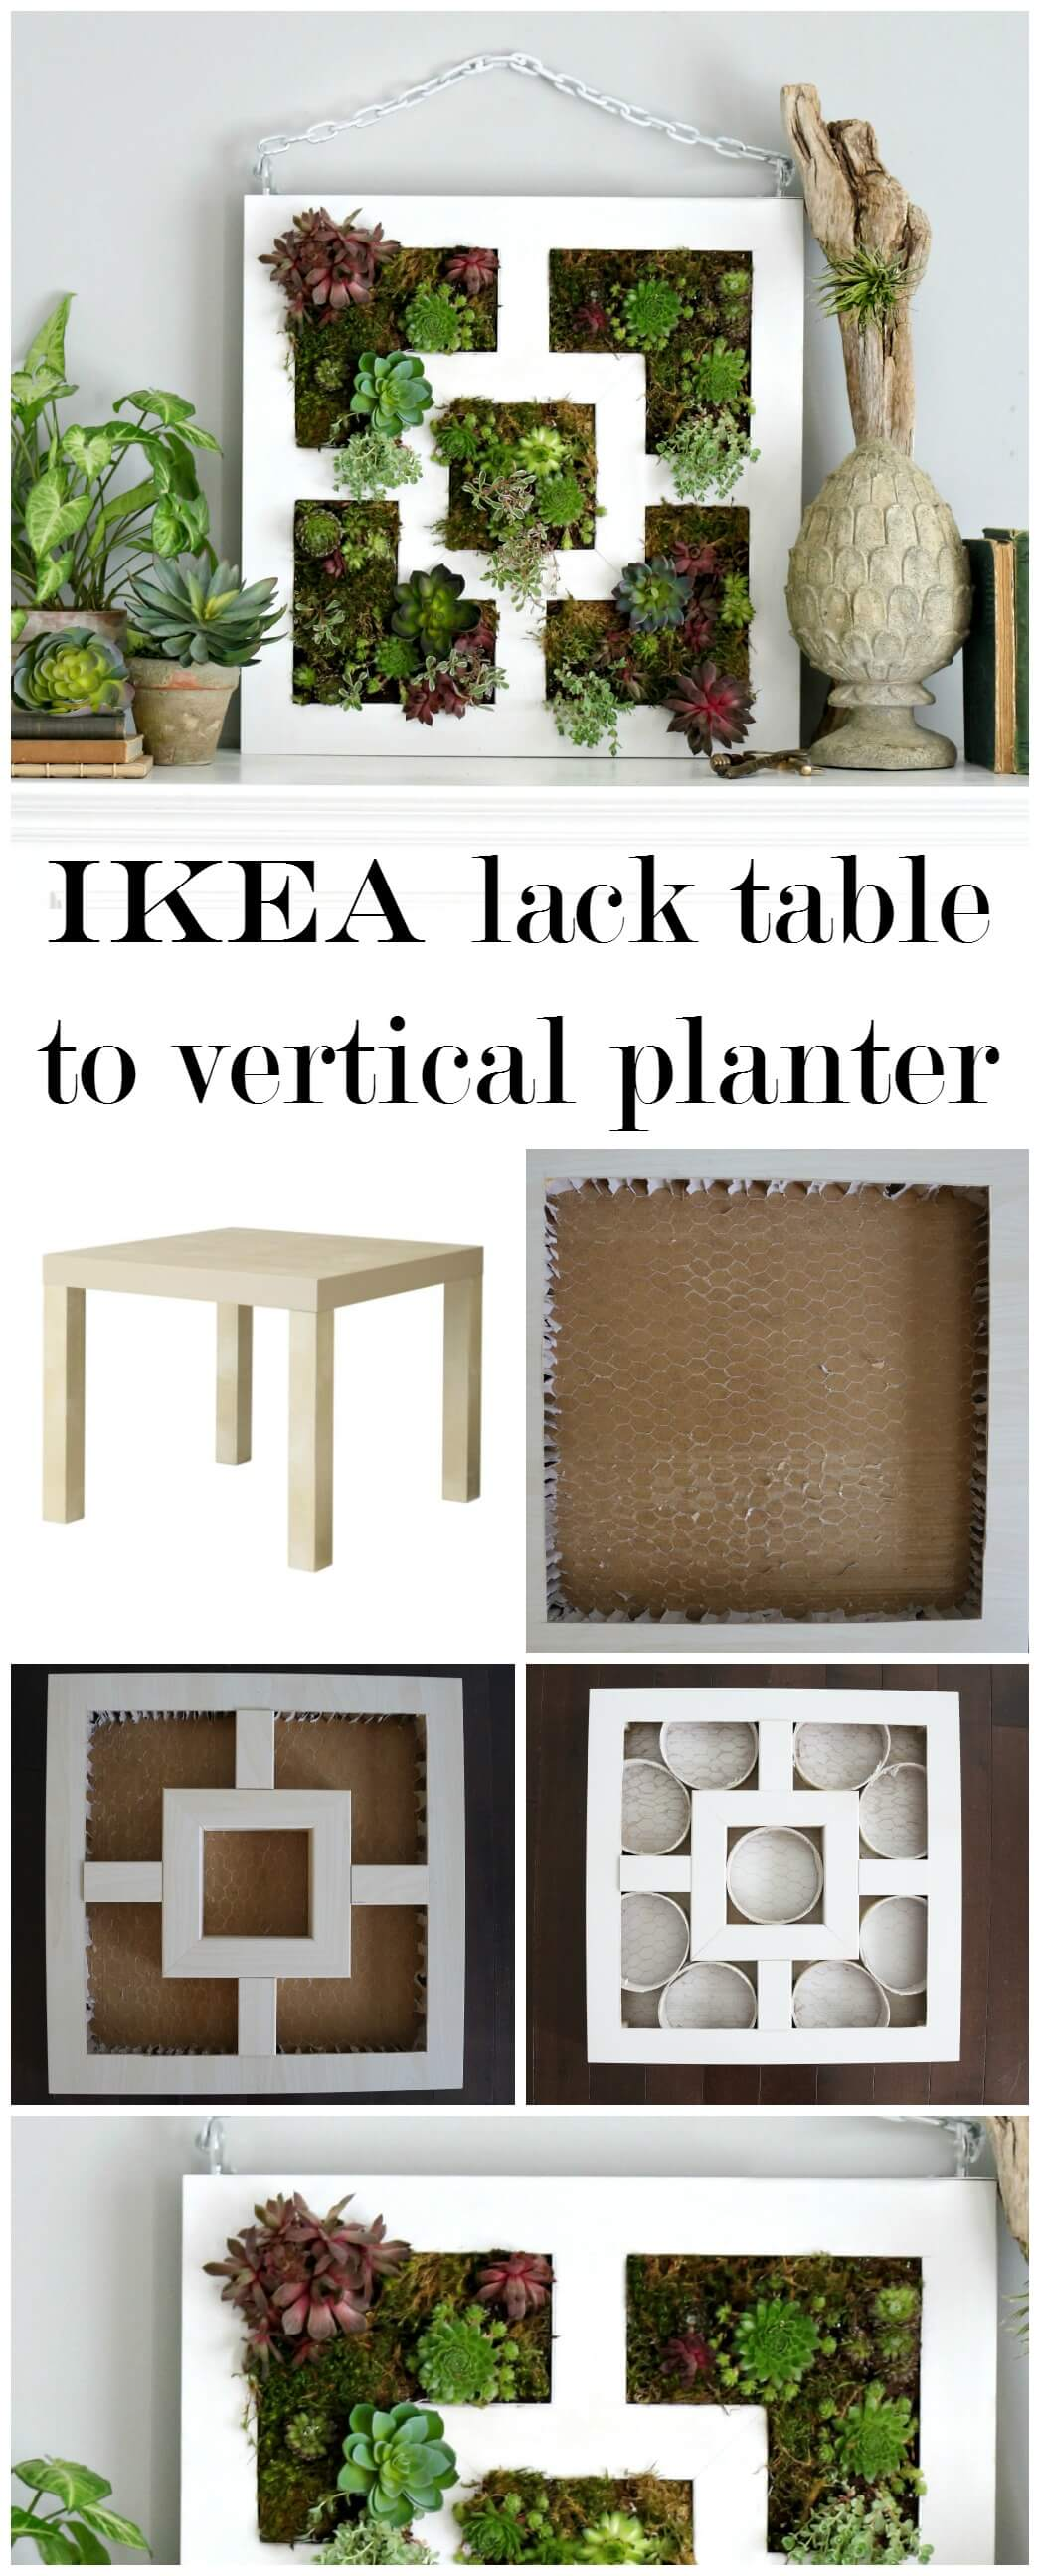 Repurpose a Table as a Vertical Planter